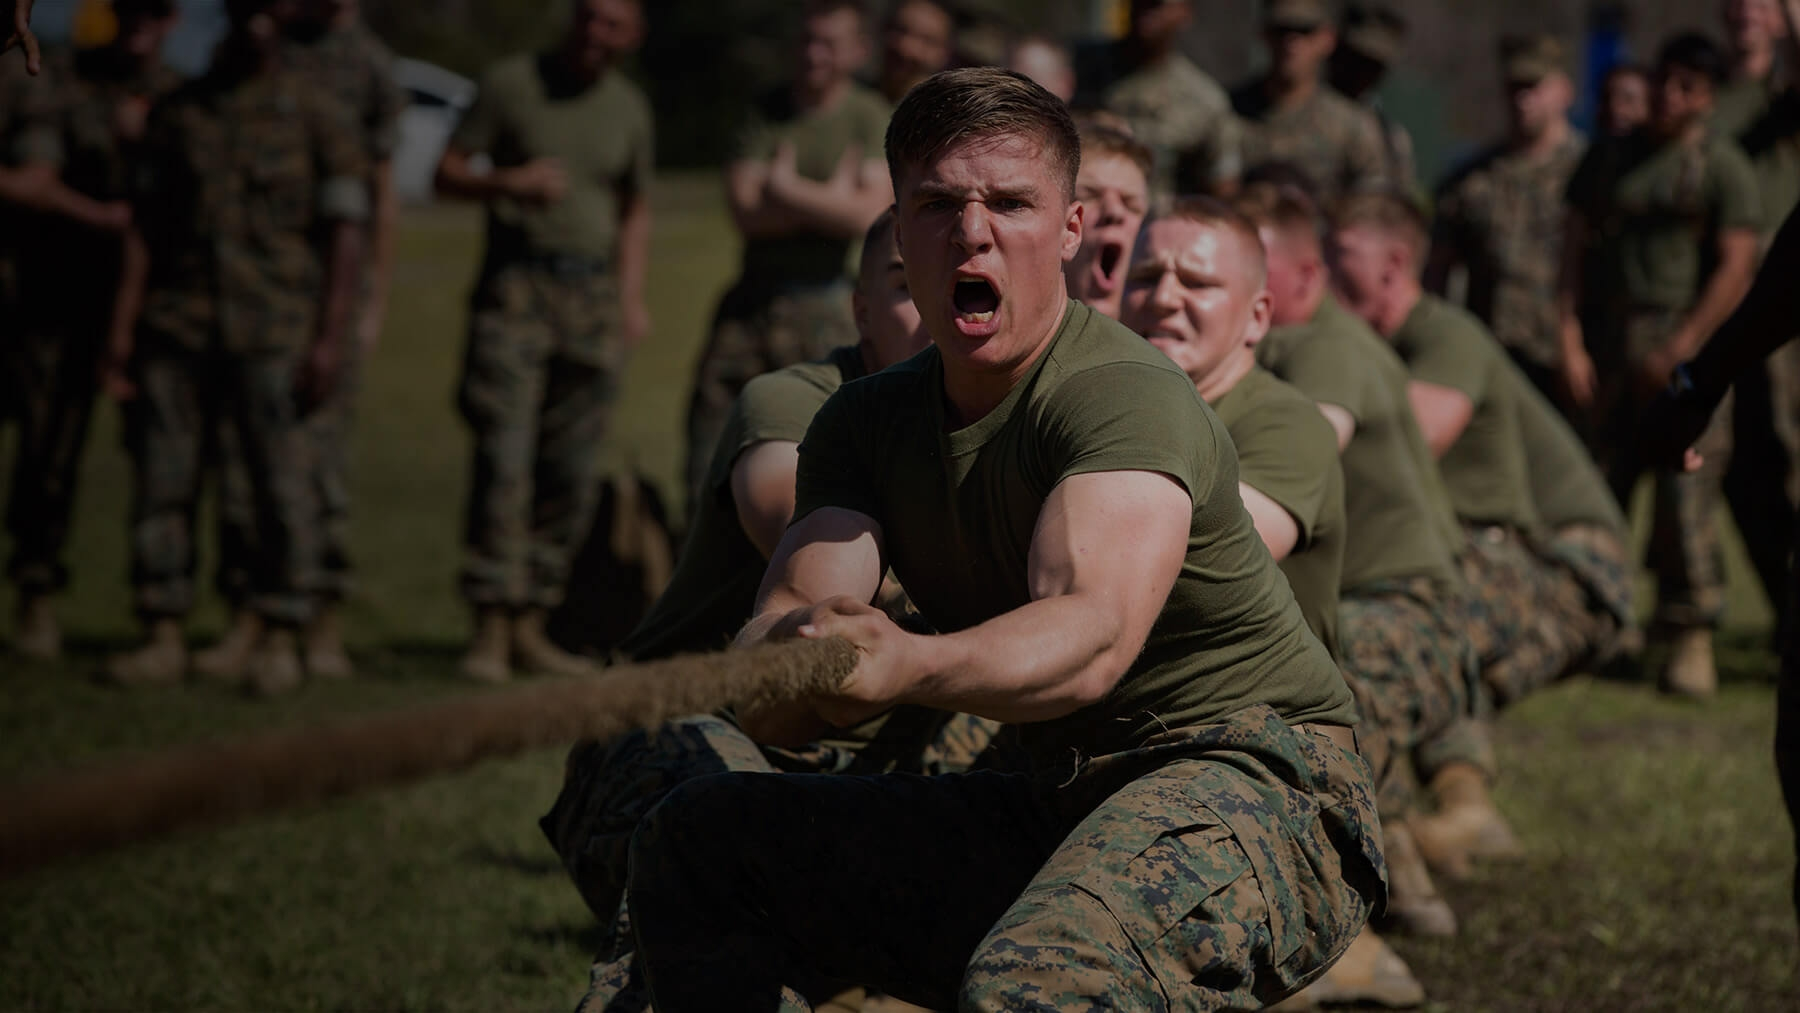 Marine Corps Tug of War